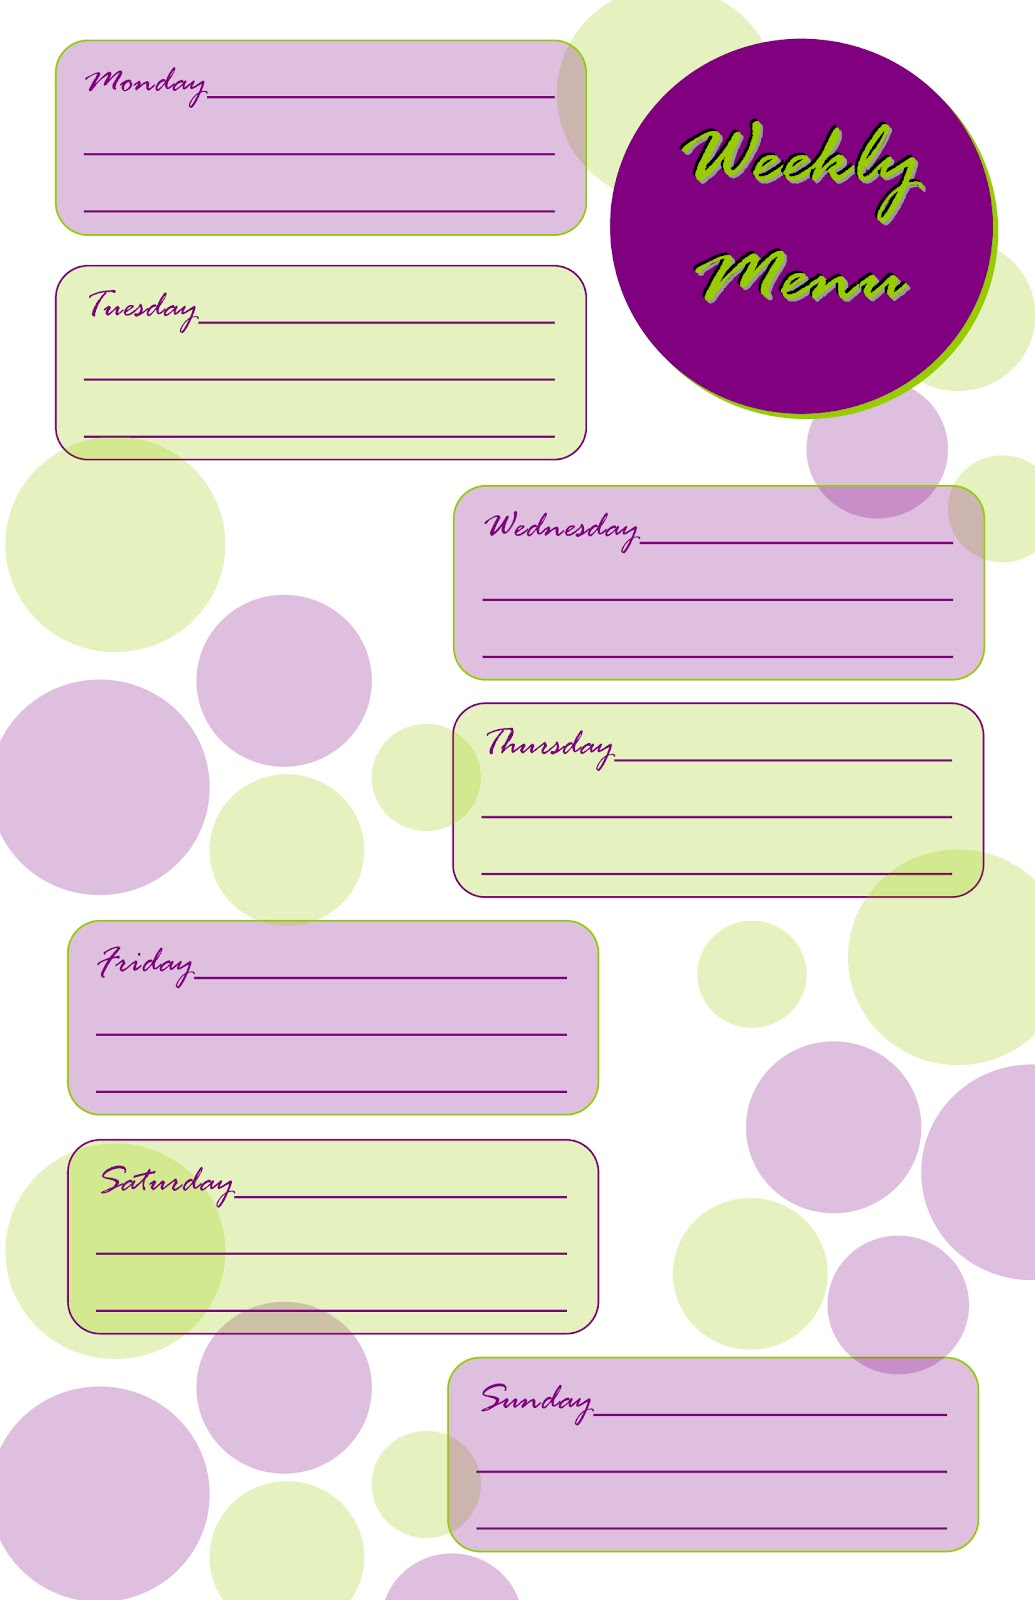 Taking Time To Create Weekly Menu Planner Free Printable